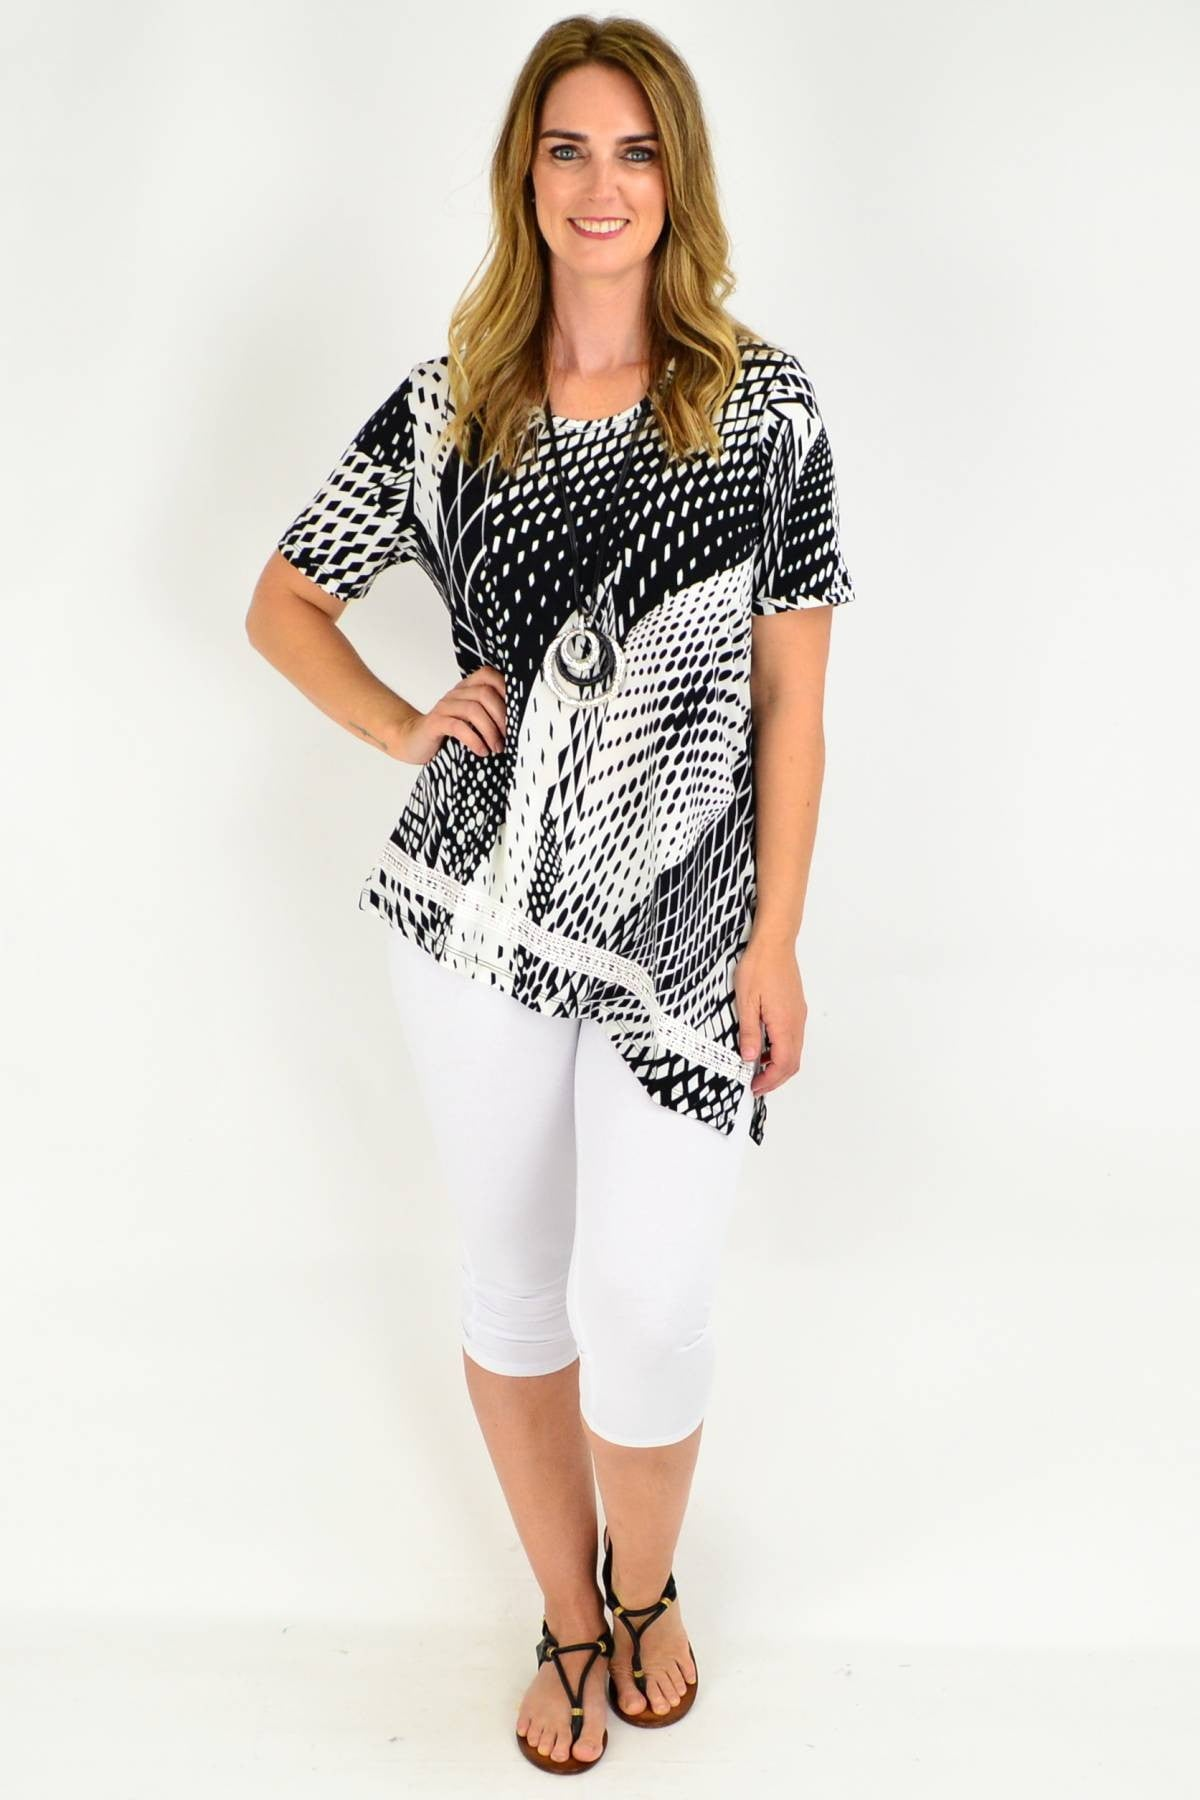 Black and White Diamond Print Asymmetrical Tunic Blouse | I Love Tunics | Tunic Tops | Tunic Dresses | Women's Tops | Plus Size Australia | Mature Fashion